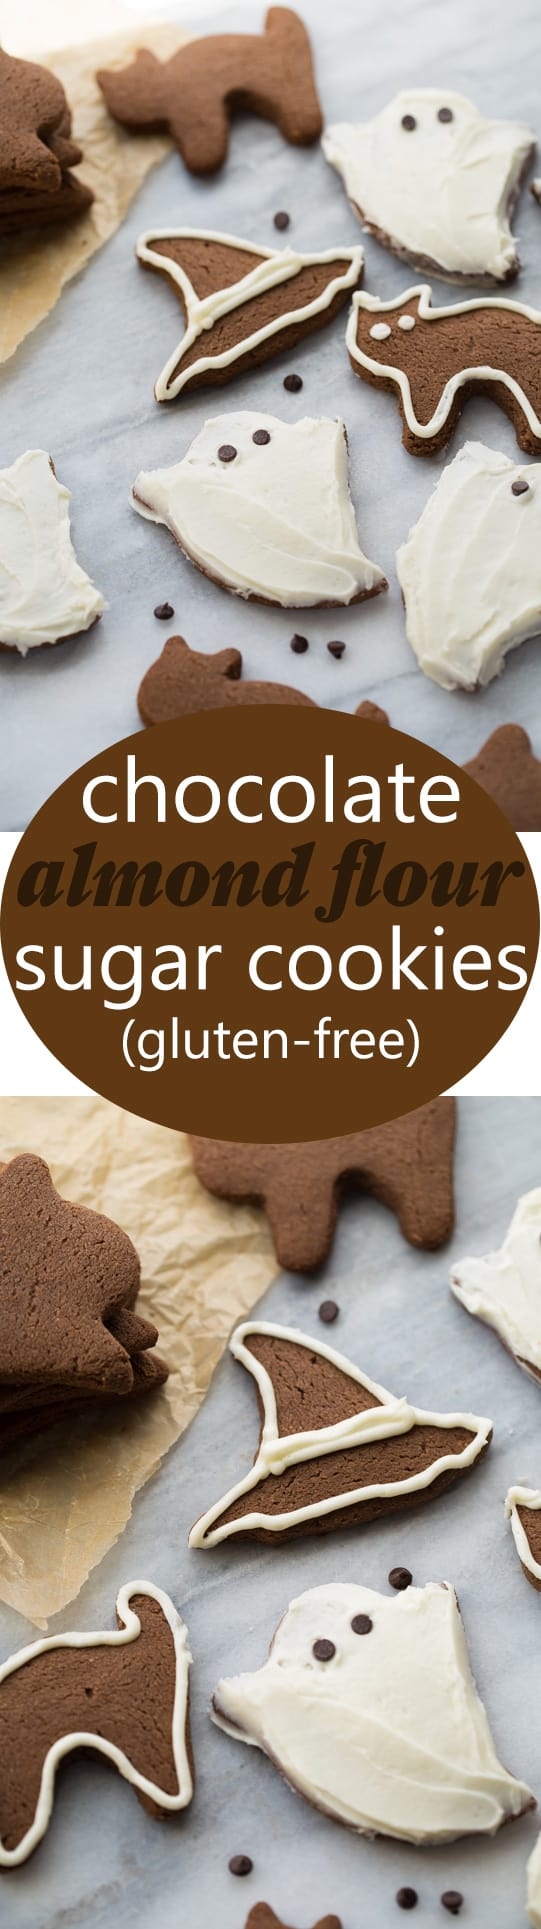 Chocolate Almond Flour Sugar Cookies! Soft in the middle, crisp on the edges. Easy to make and so fun to decorate!